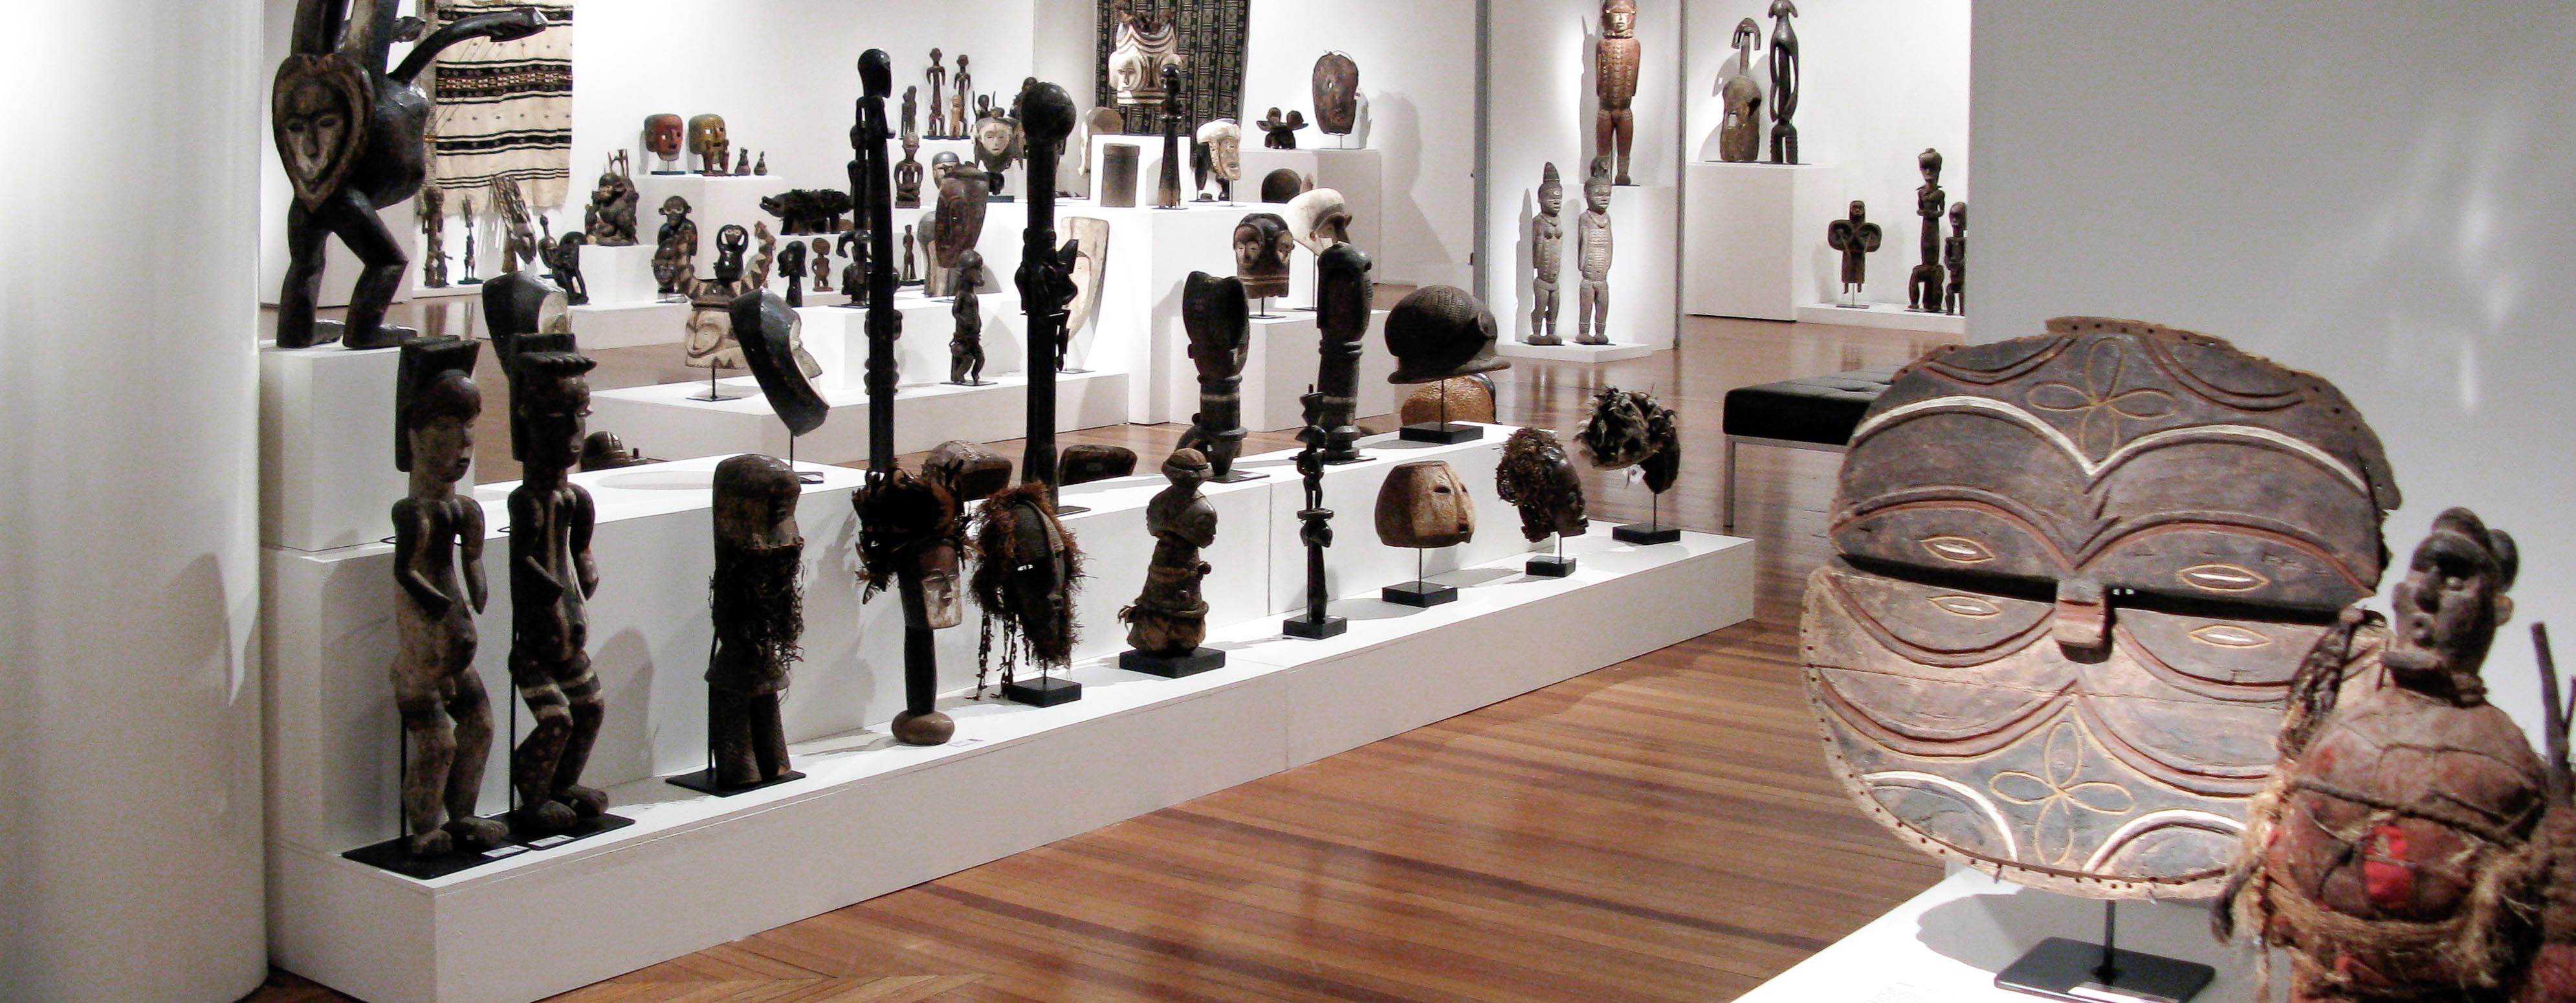 Photo of an african art gallery exhibiting african masks and figures